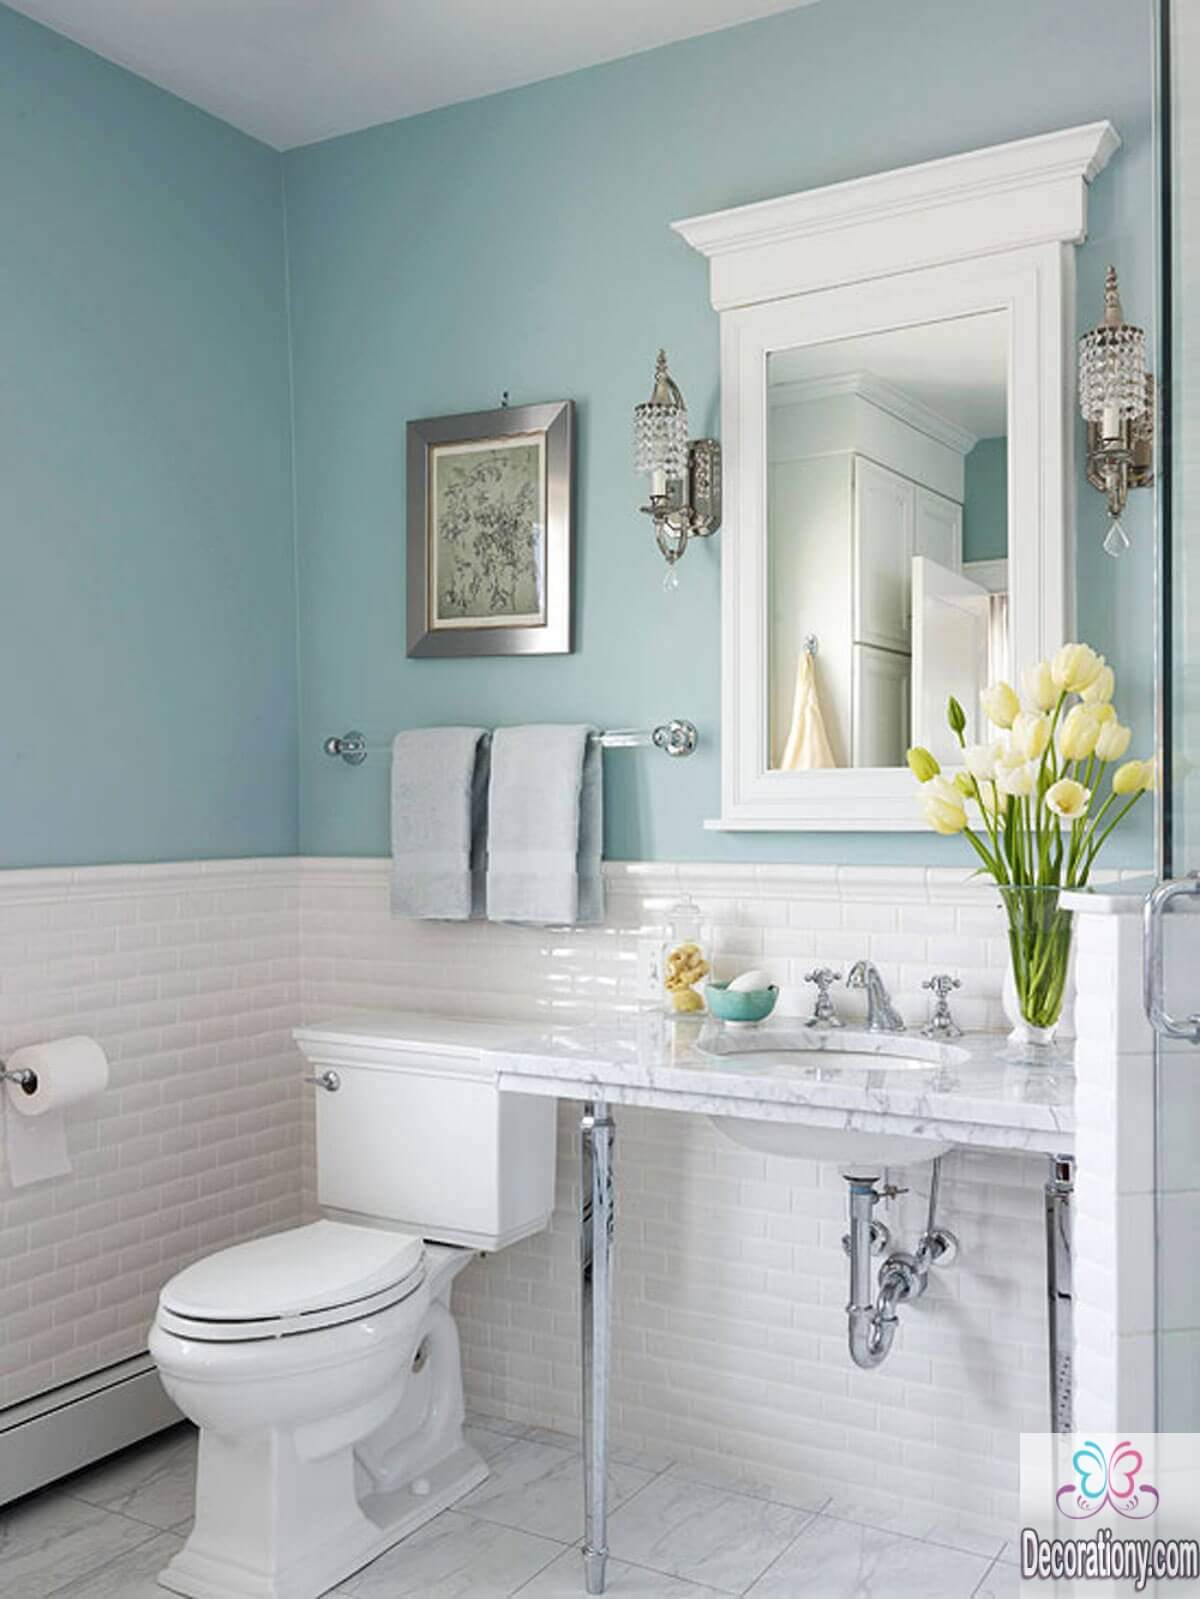 10 affordable colors for small bathrooms decoration y for Small bathroom interior